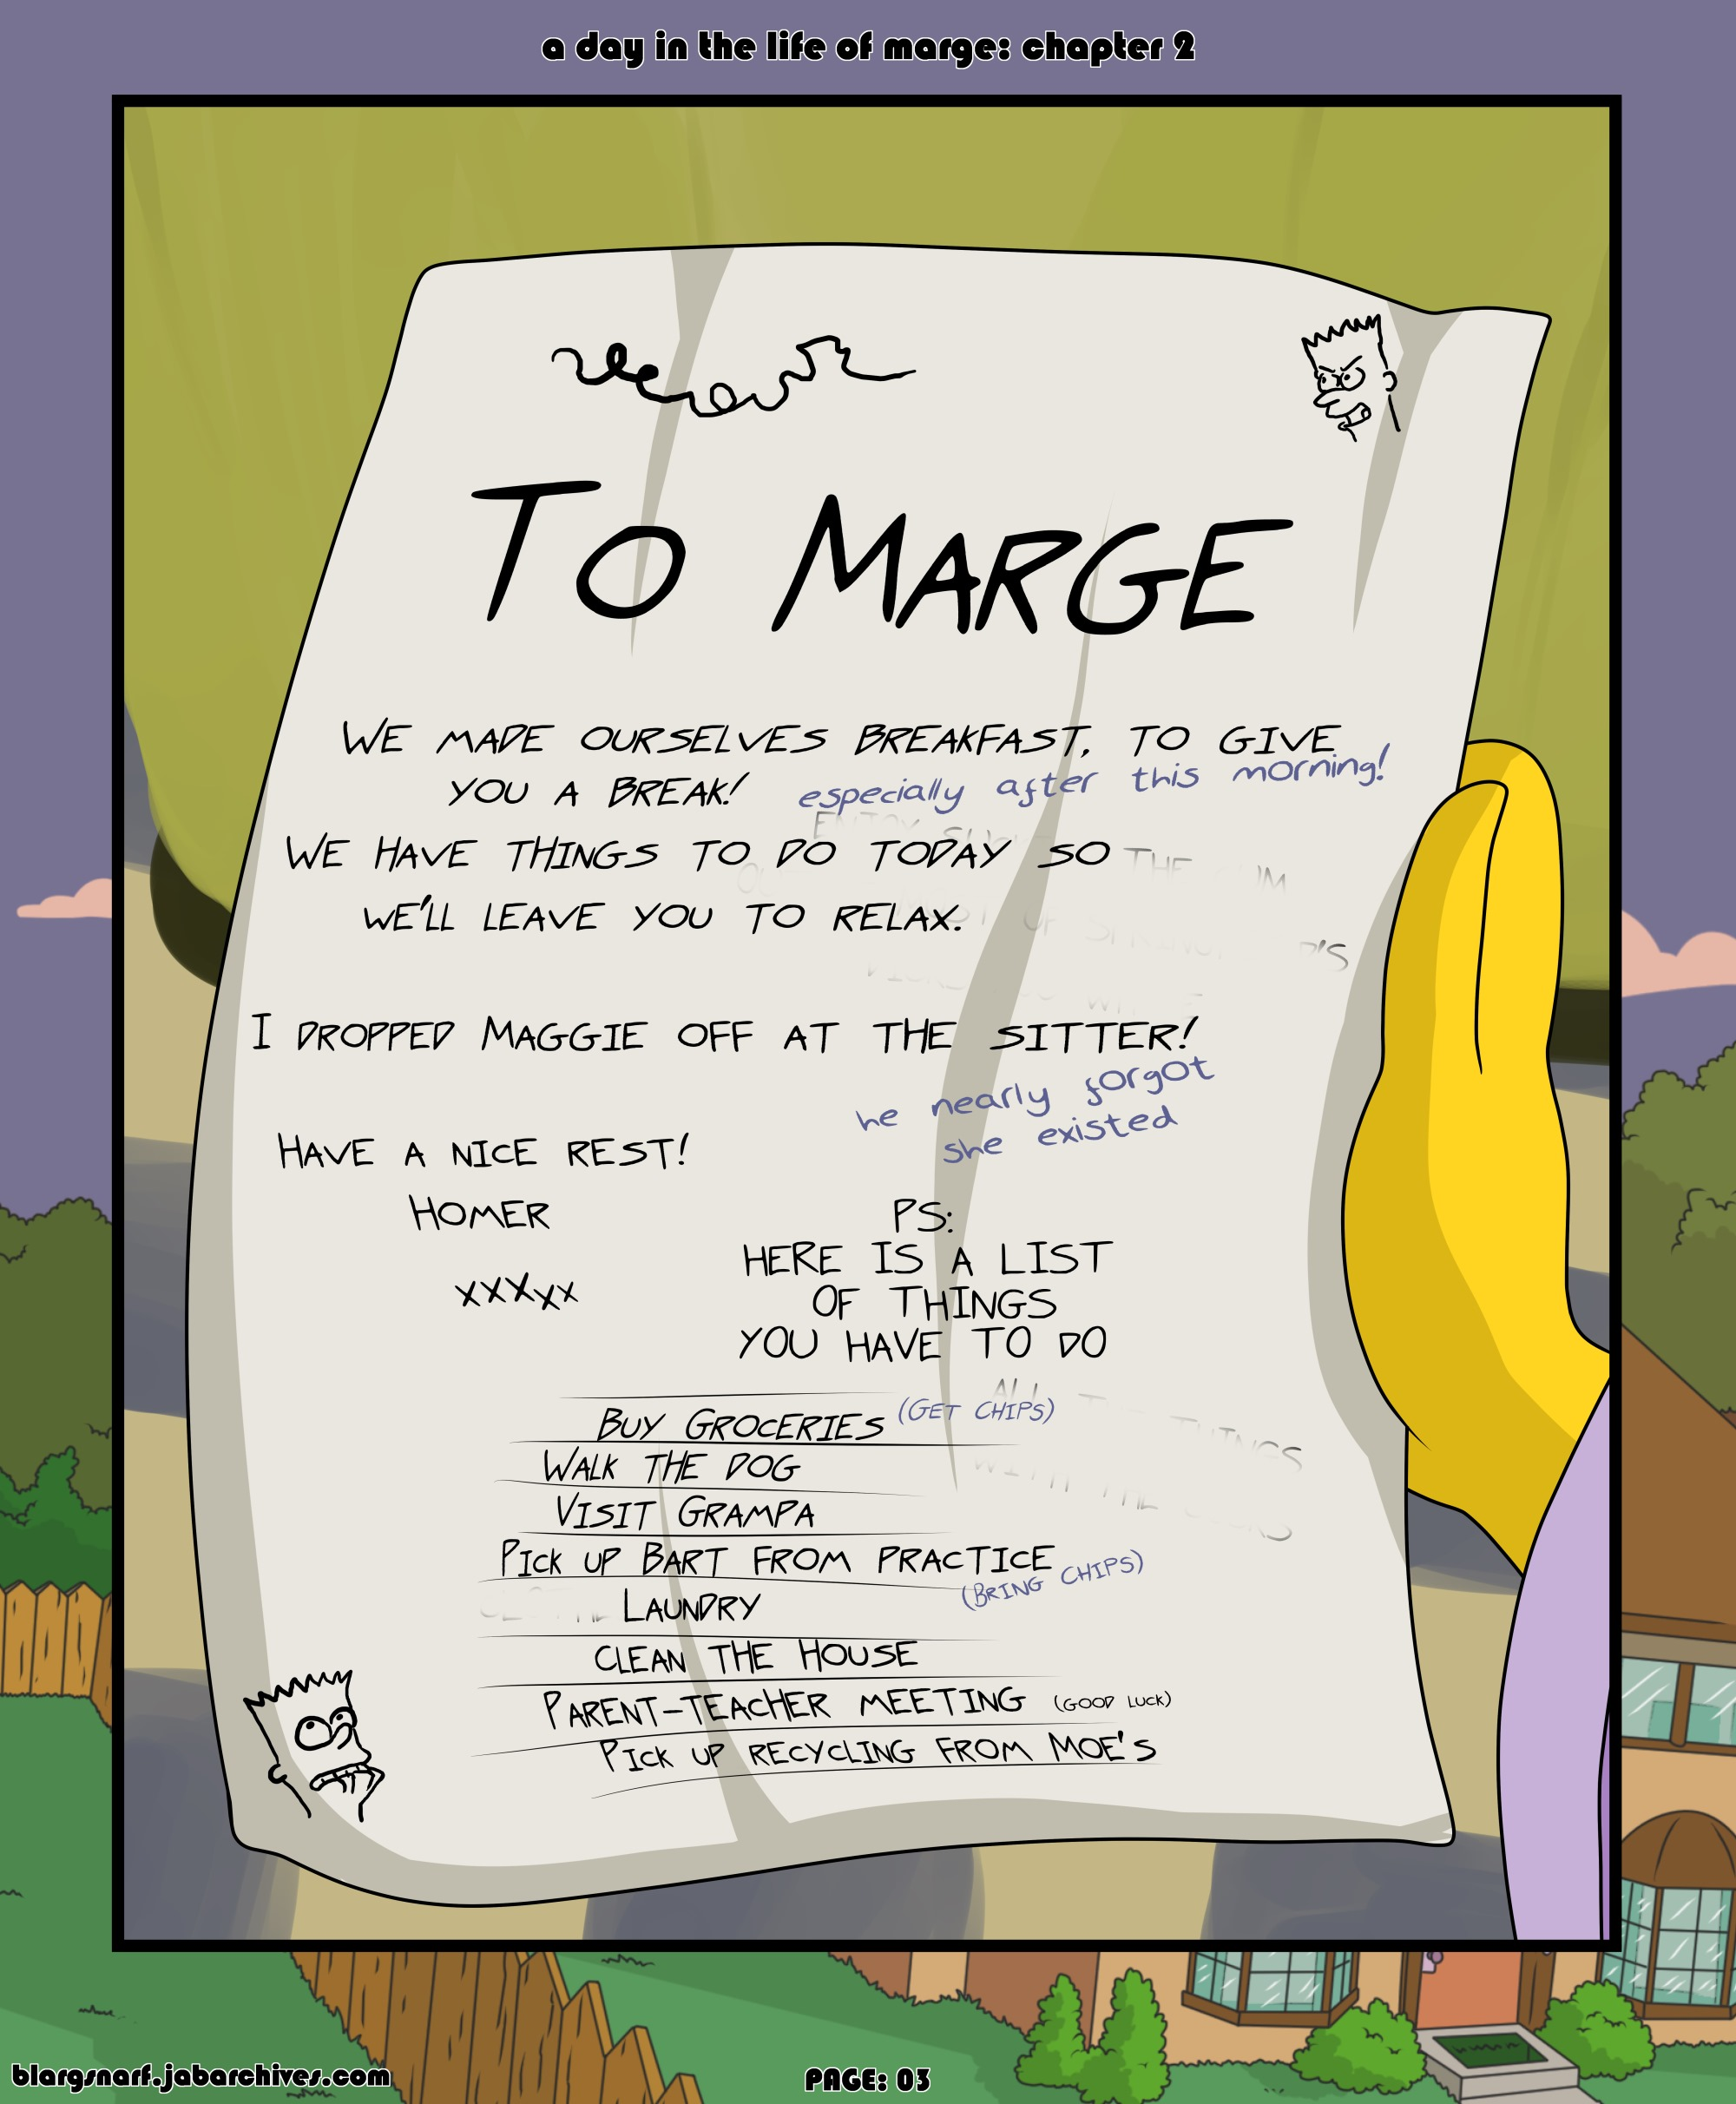 Simpsons-Day in the Life of Marge 2